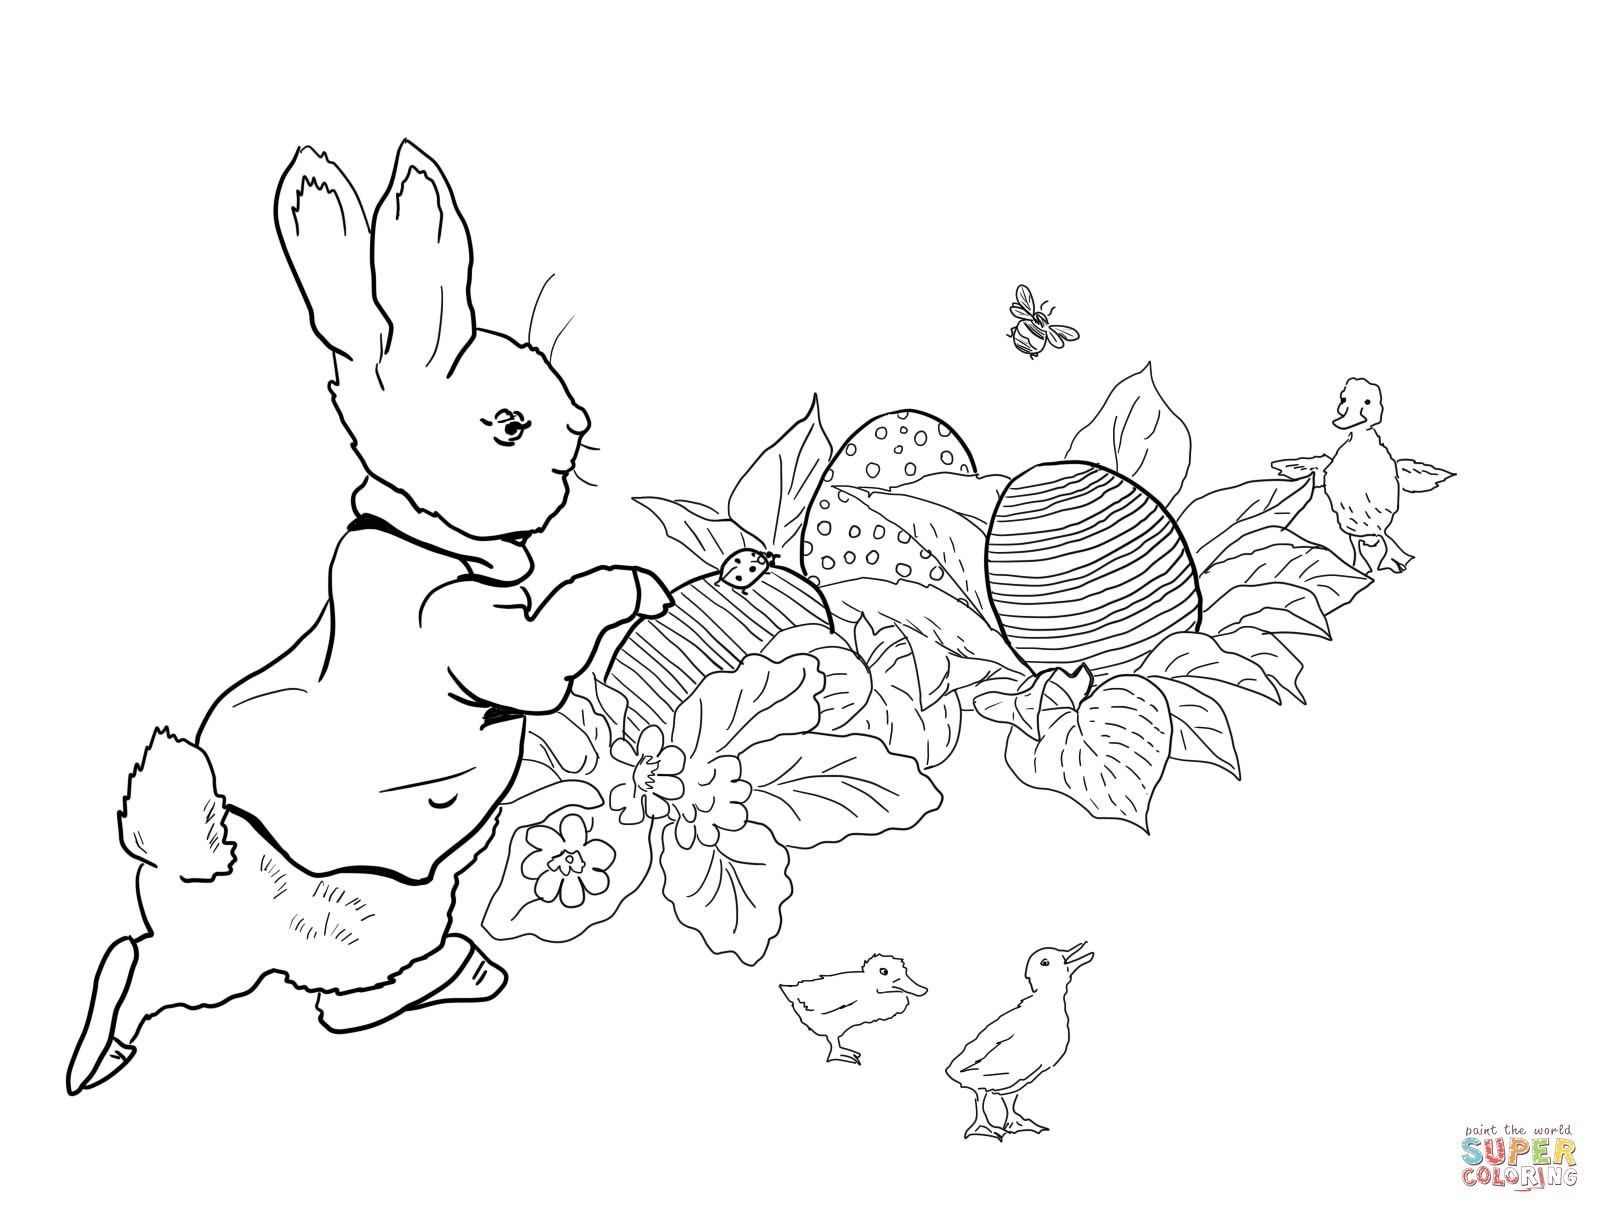 Peter Rabbit Easter Egg Hunt Coloring Page Peter Rabbit Illustration Easter Coloring Pages Rabbit Colors